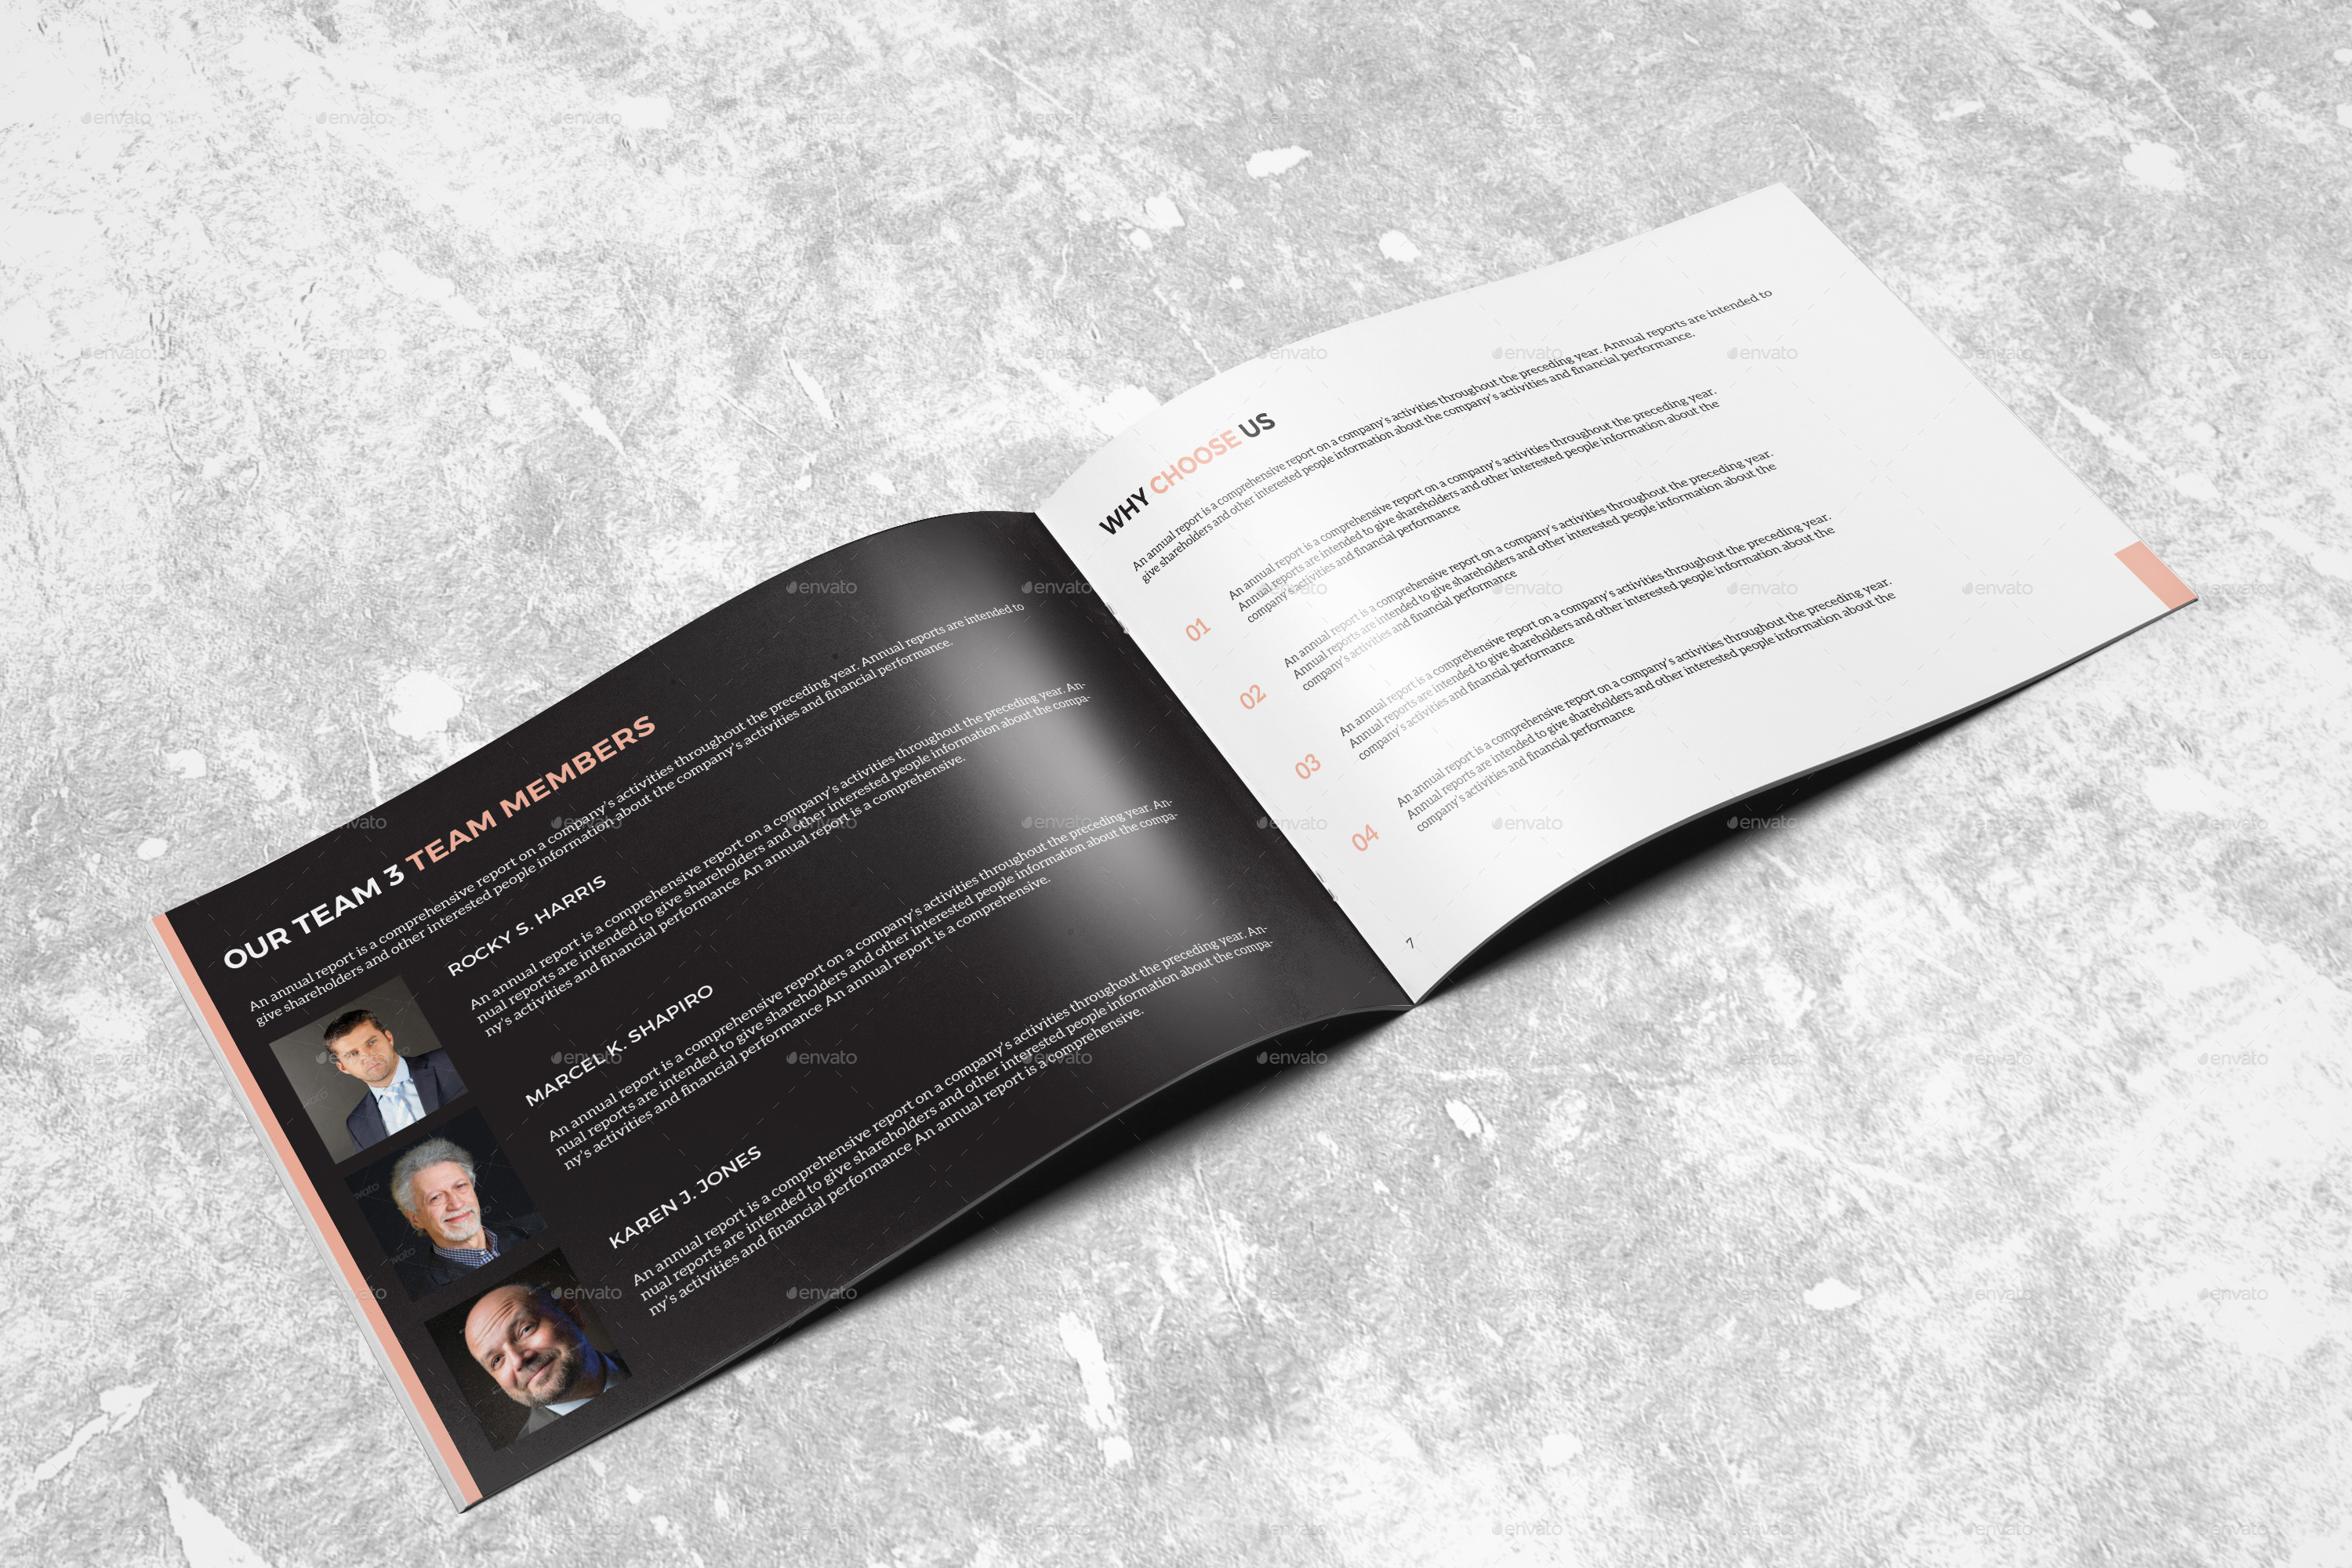 Landscape Annual Report 2015 I Indesign Template by arnabkumar ...